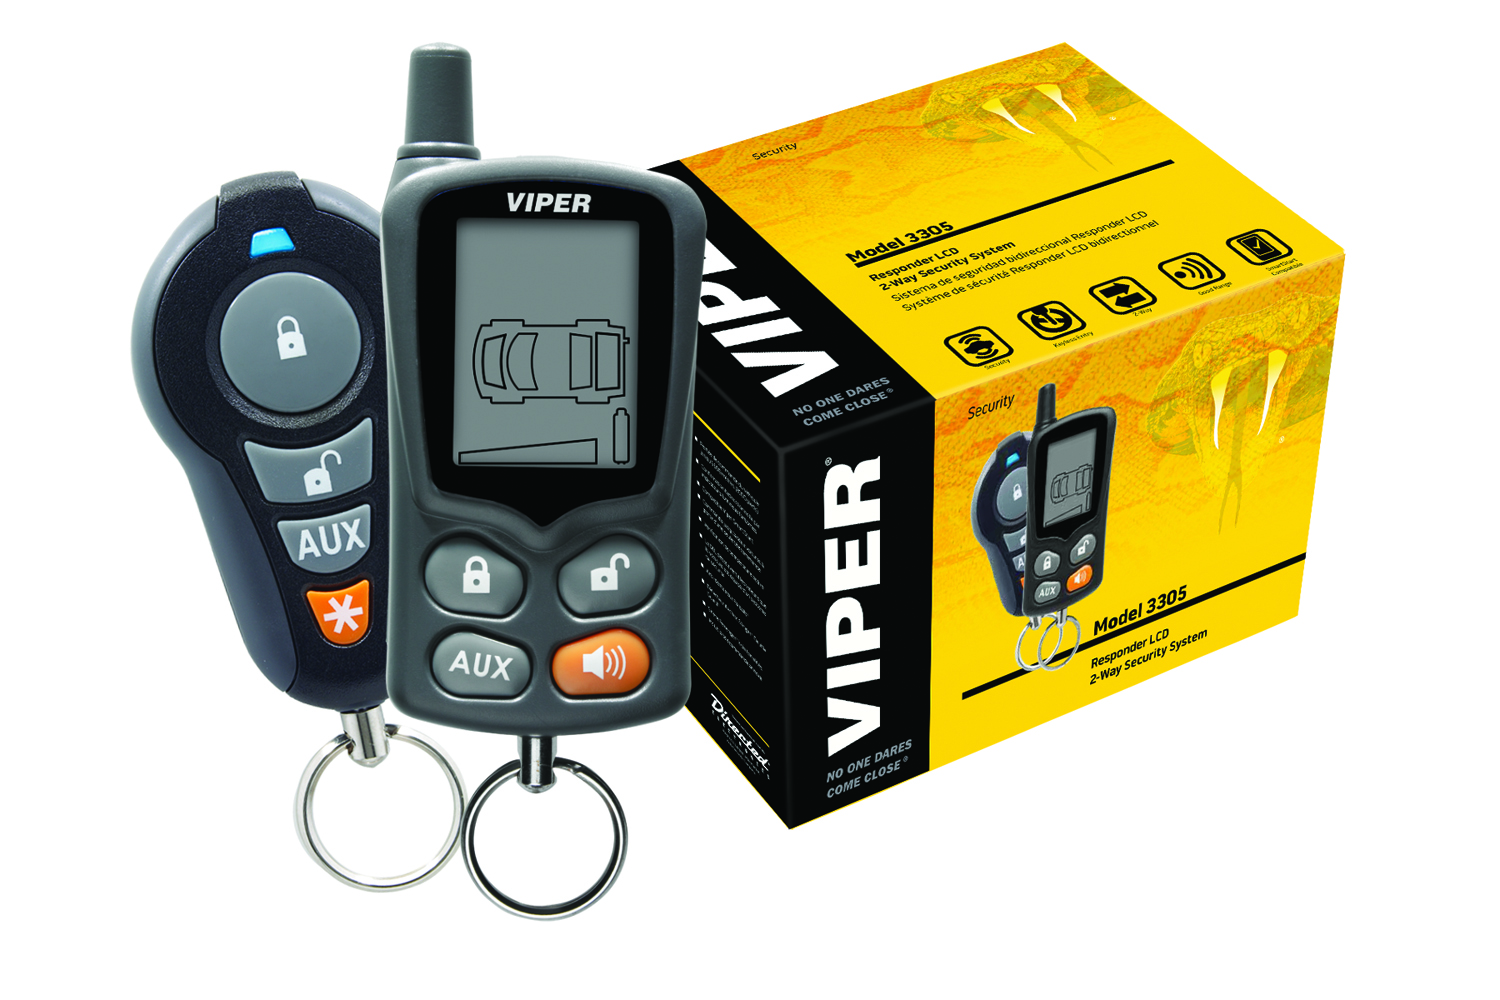 Viper Remote Start System Wiring Diagram furthermore Viper 7752v Battery Replacement Danionics as well Astro2w njq500haf in addition Document also How Do I Program A Viper 479v Remote. on astrostart replacement remote